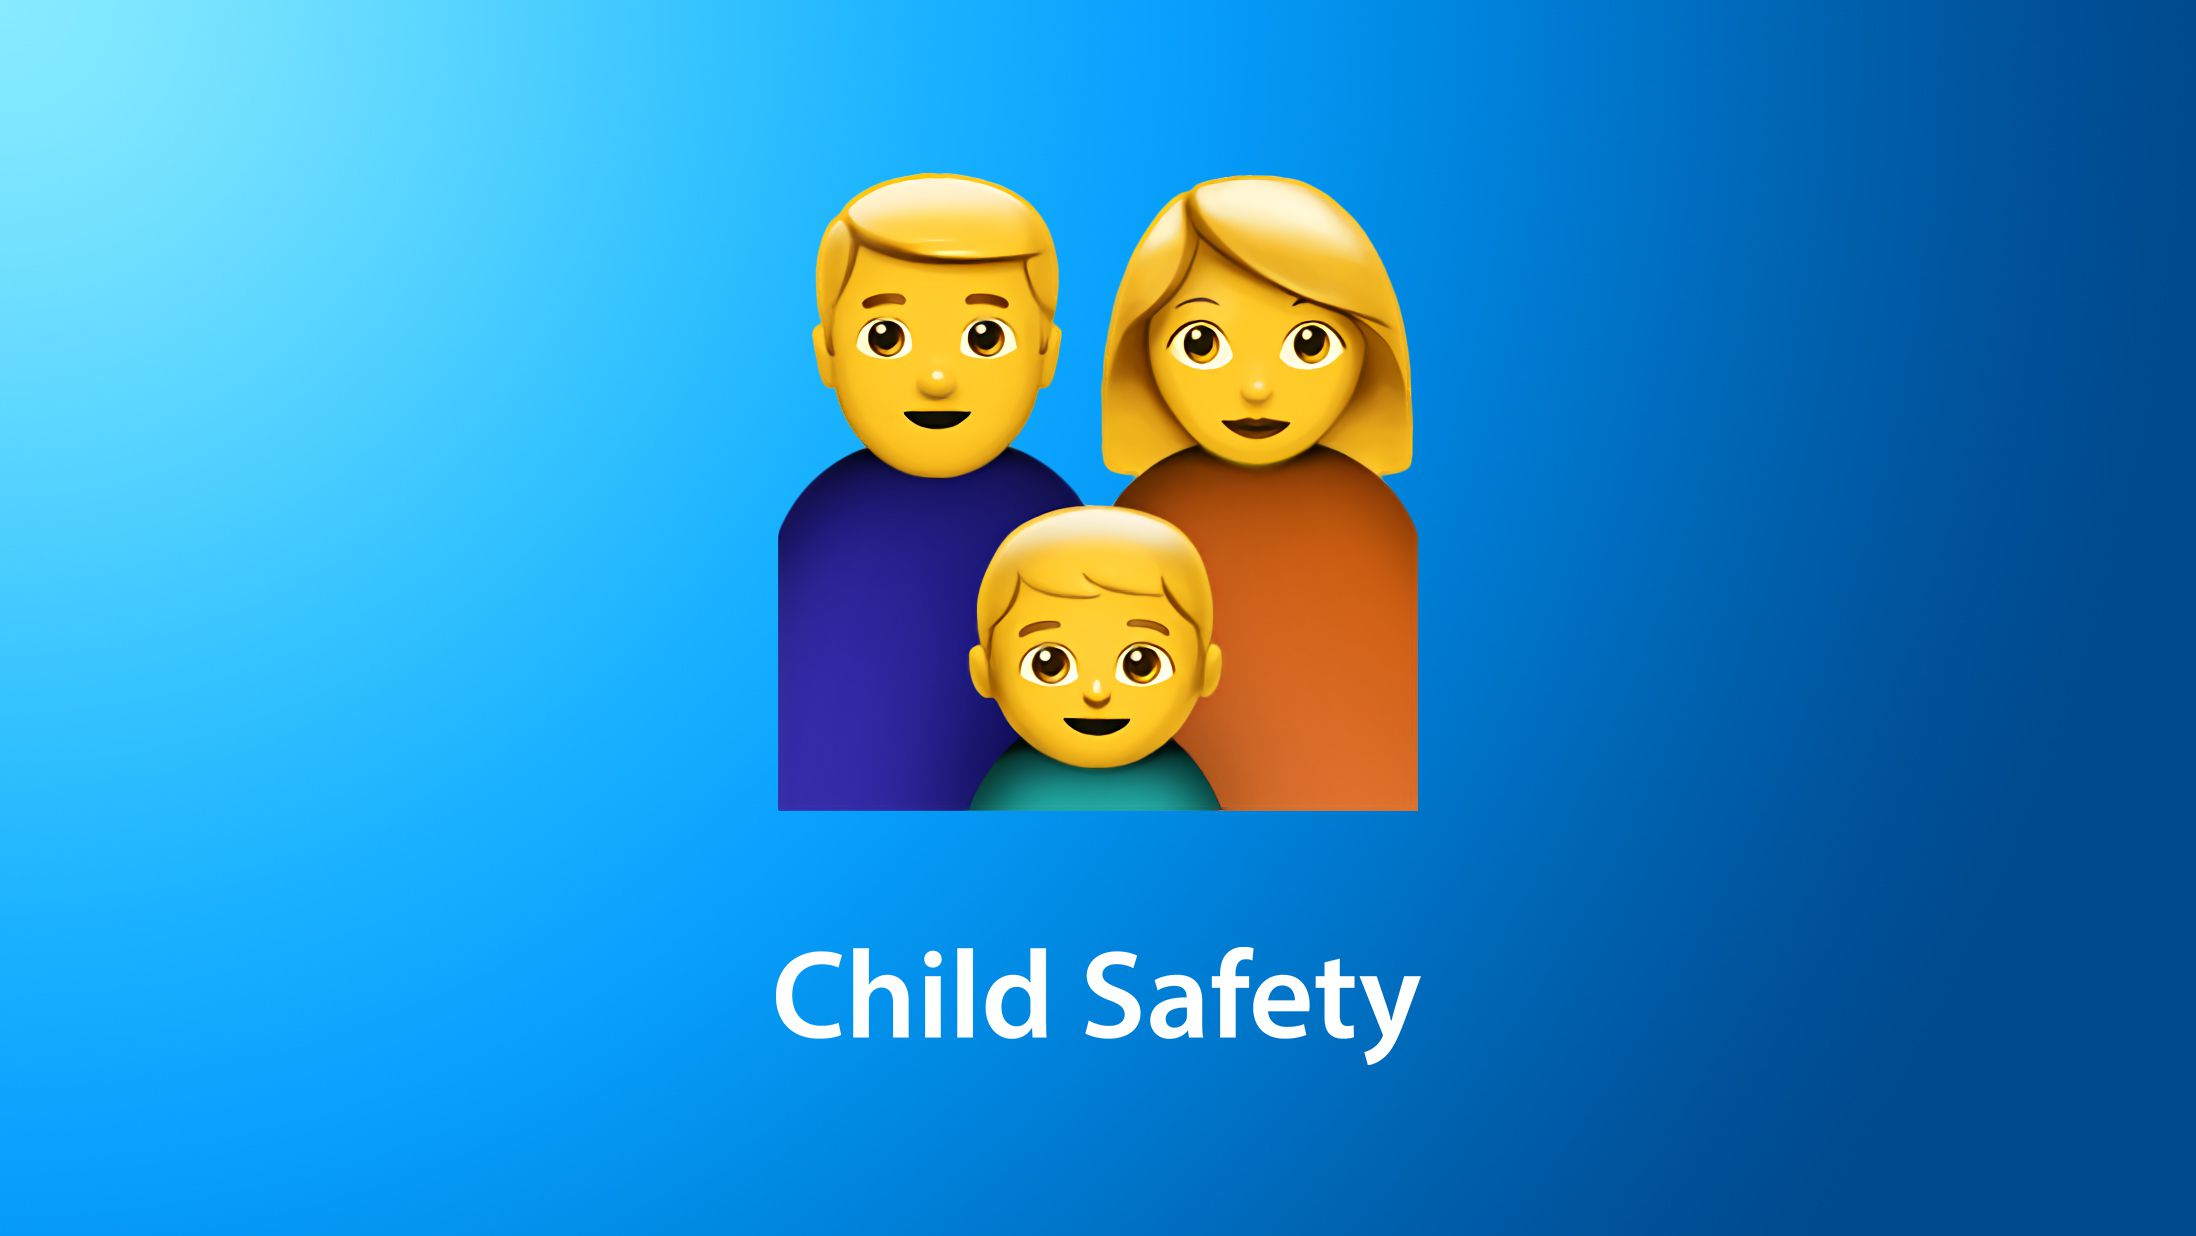 Child-Safety-Feature-Blue